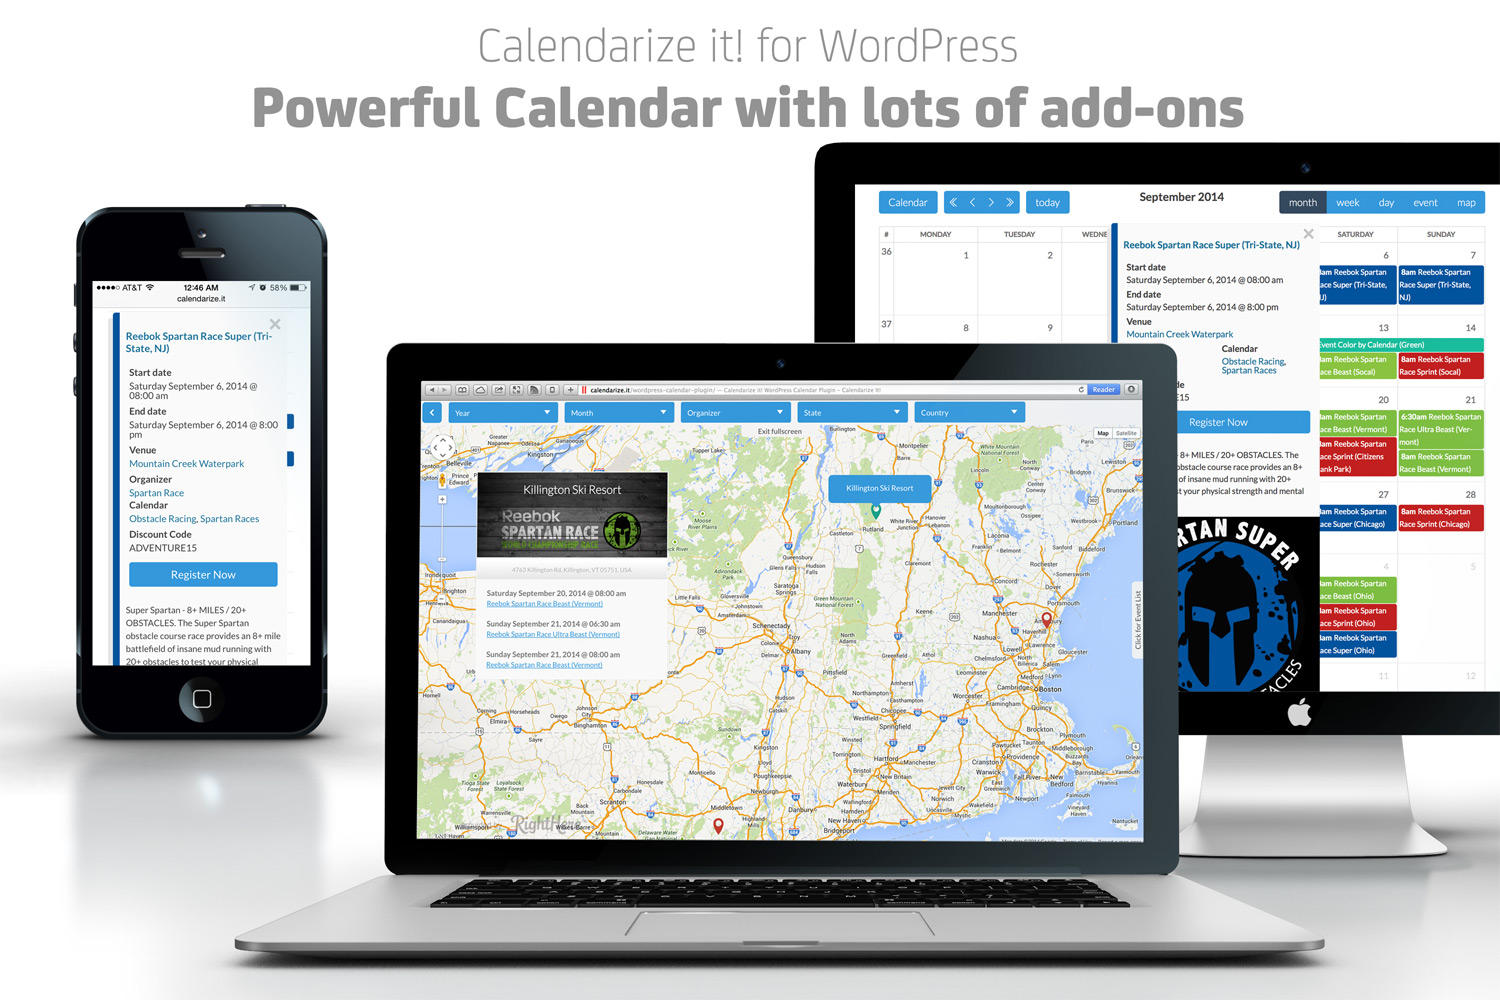 Installation and Setup of Calendarize it for WordPress by RightHere - 58419